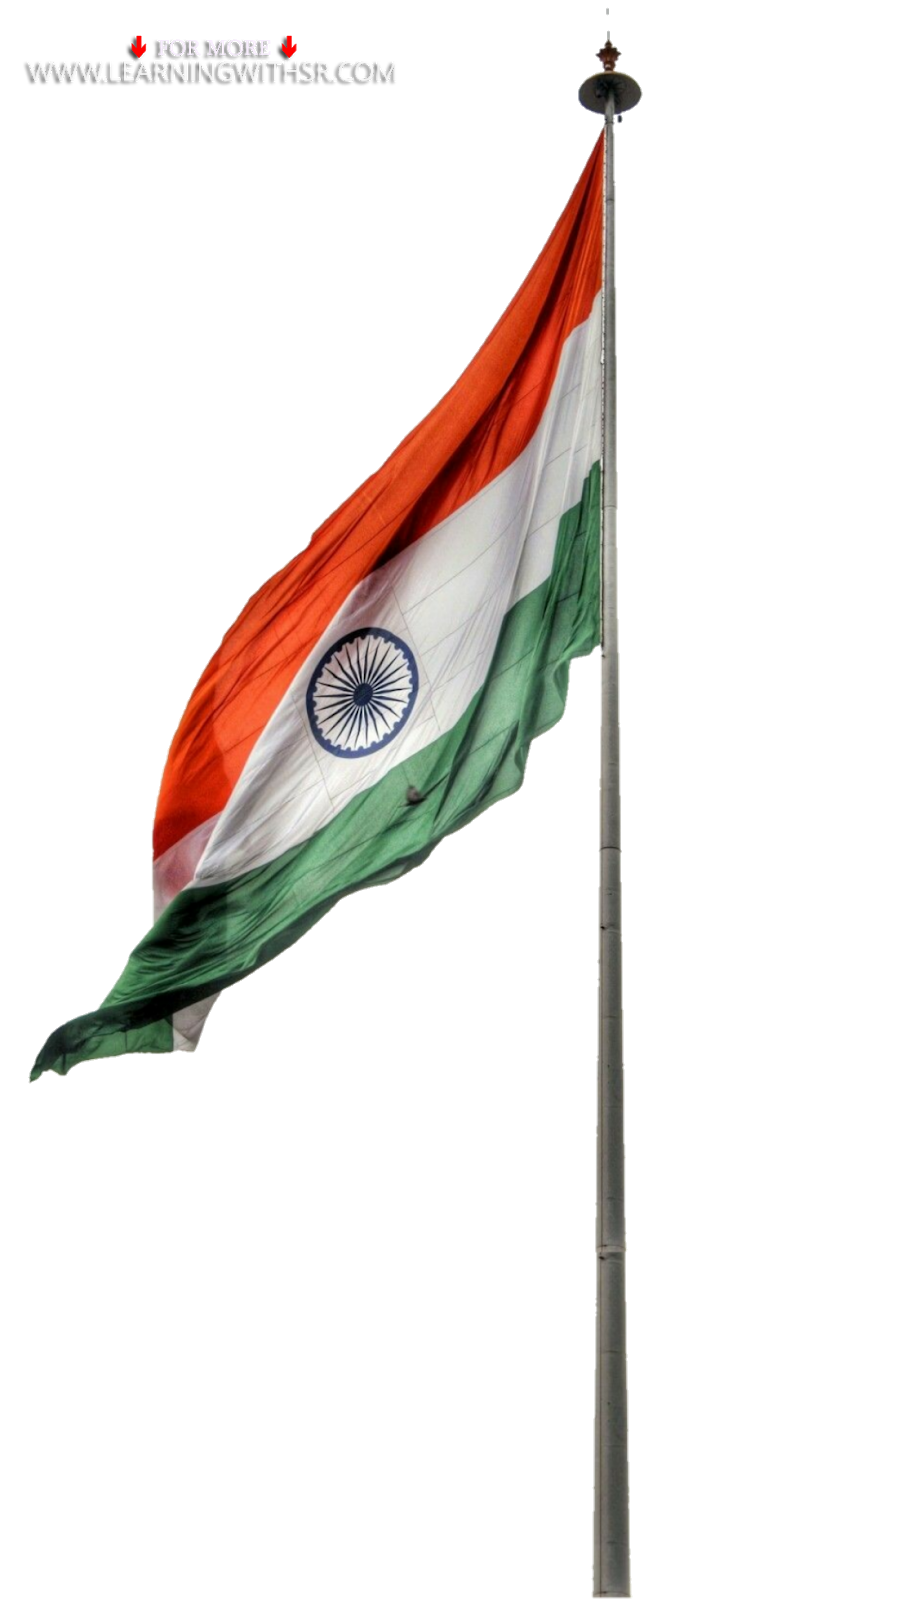 HD Indian flag png download,hd Flag png 15 august, Tiranga Hd png.